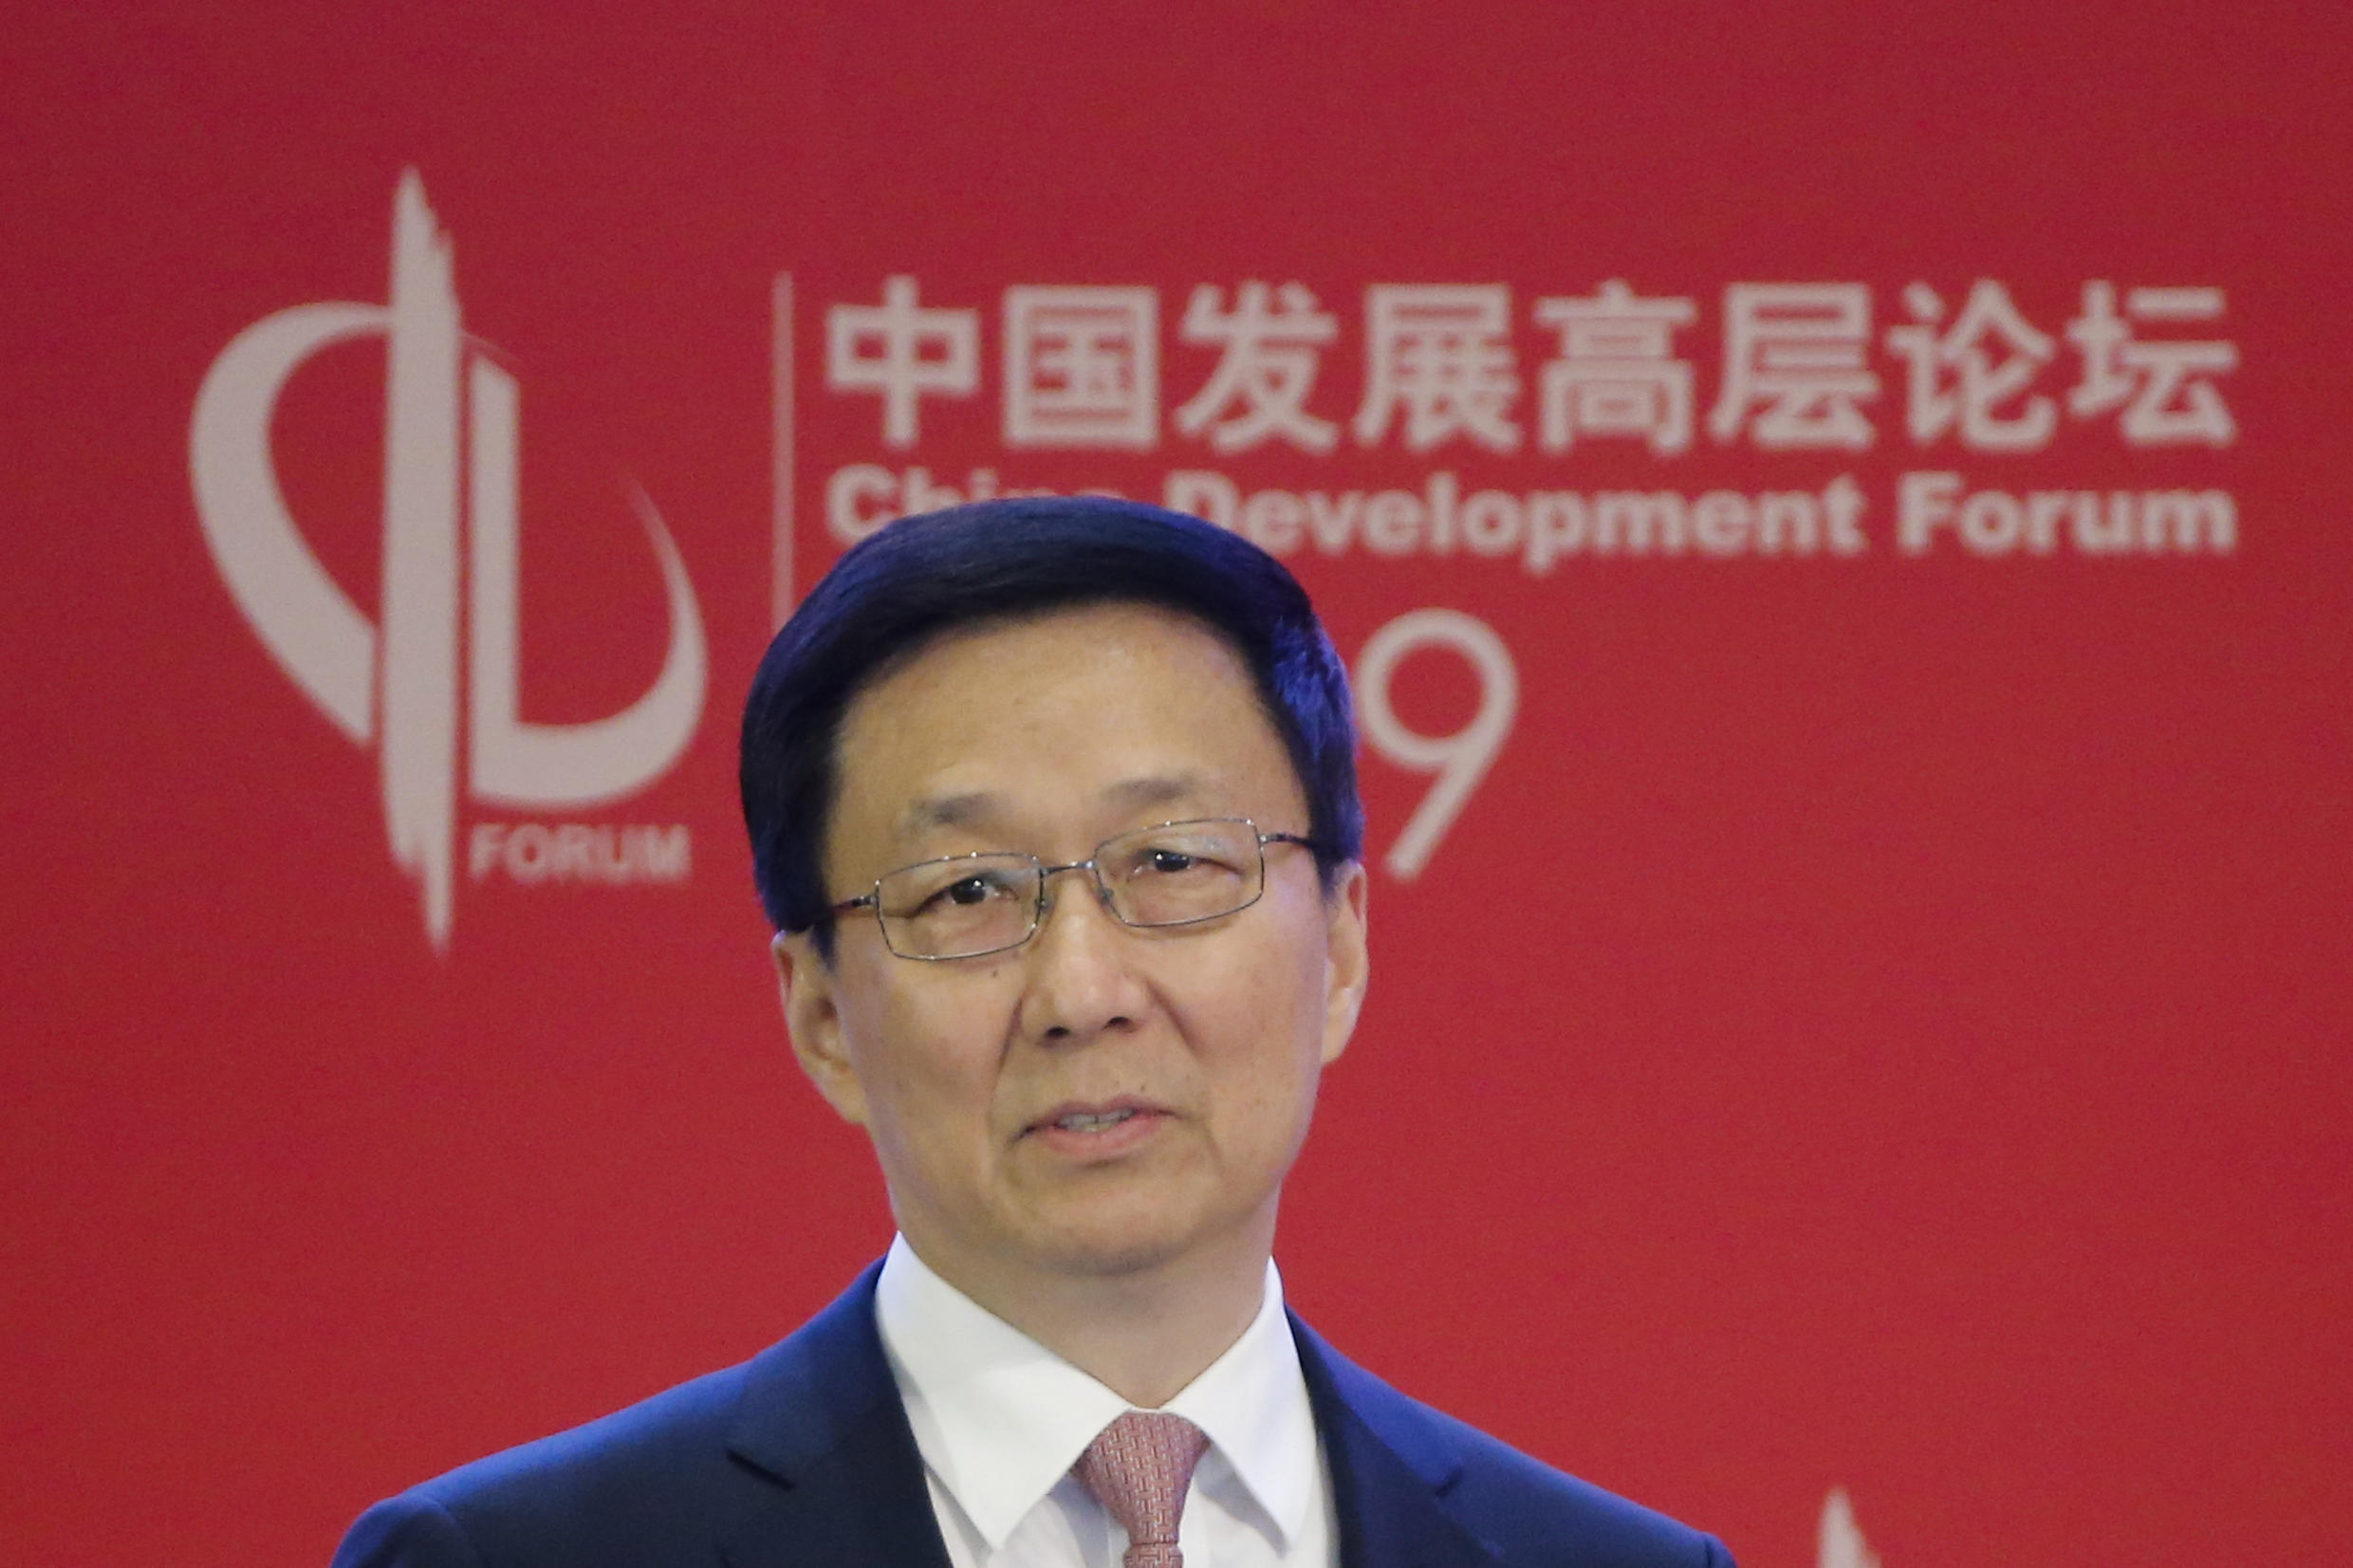 Chinese Vice-Premier and Politburo member Han Zheng. the CCP's Belt and Road point man speaking during the China Development Forum in Beijing, 24 March 2019